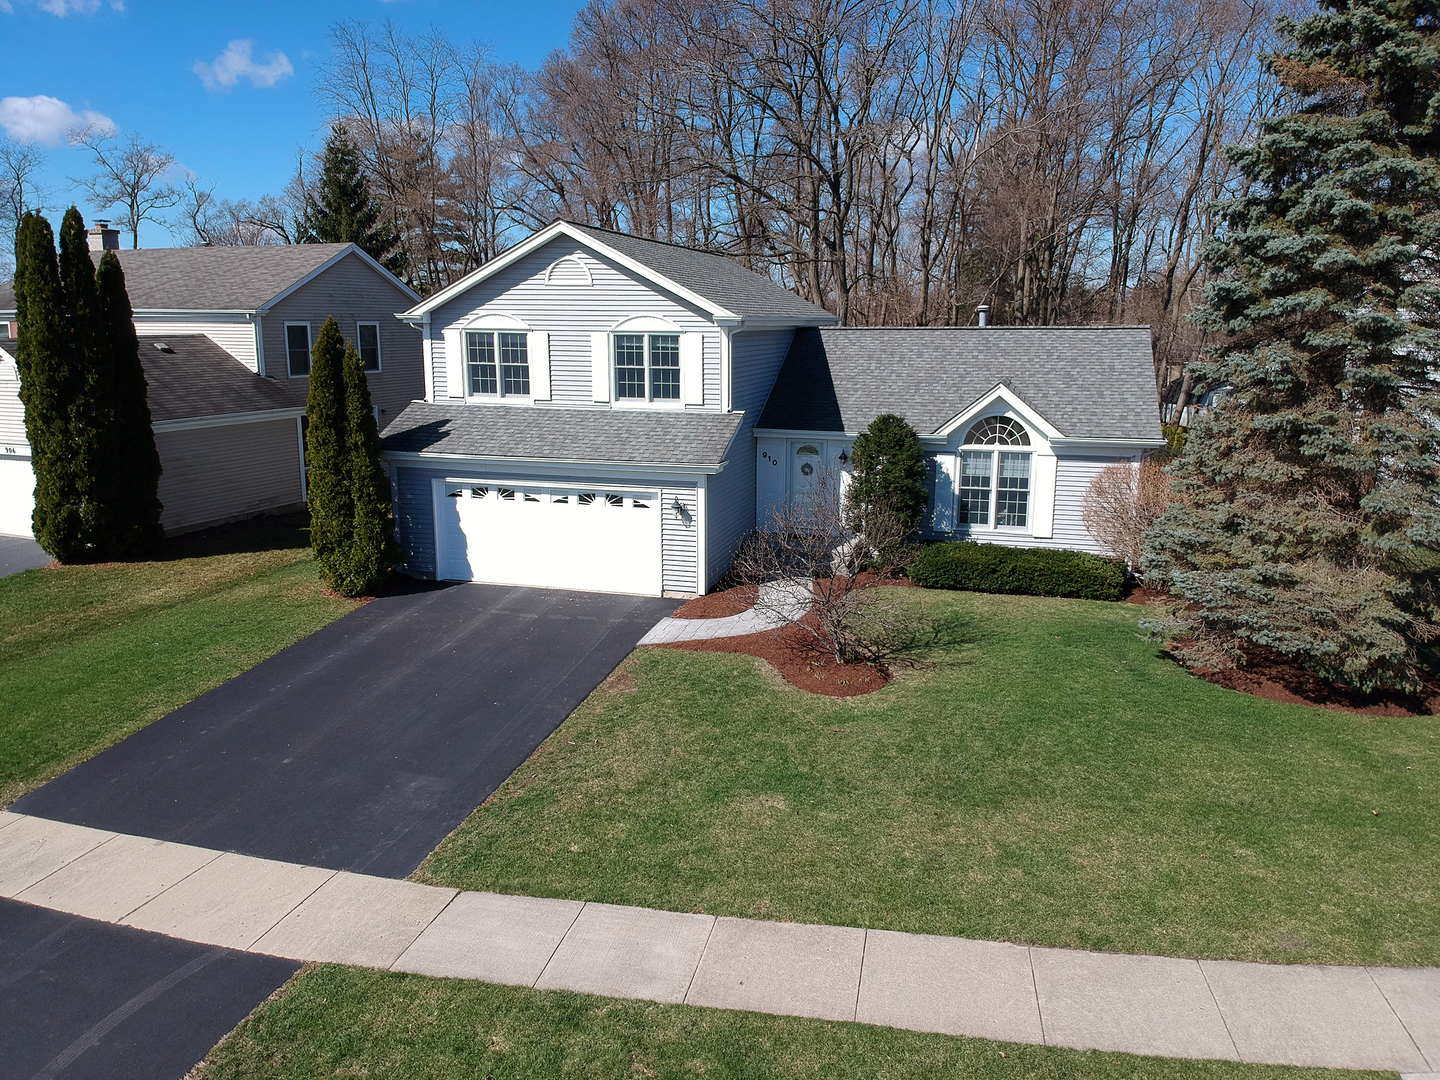 Photo of 910 HOLLY Circle LAKE ZURICH IL 60047